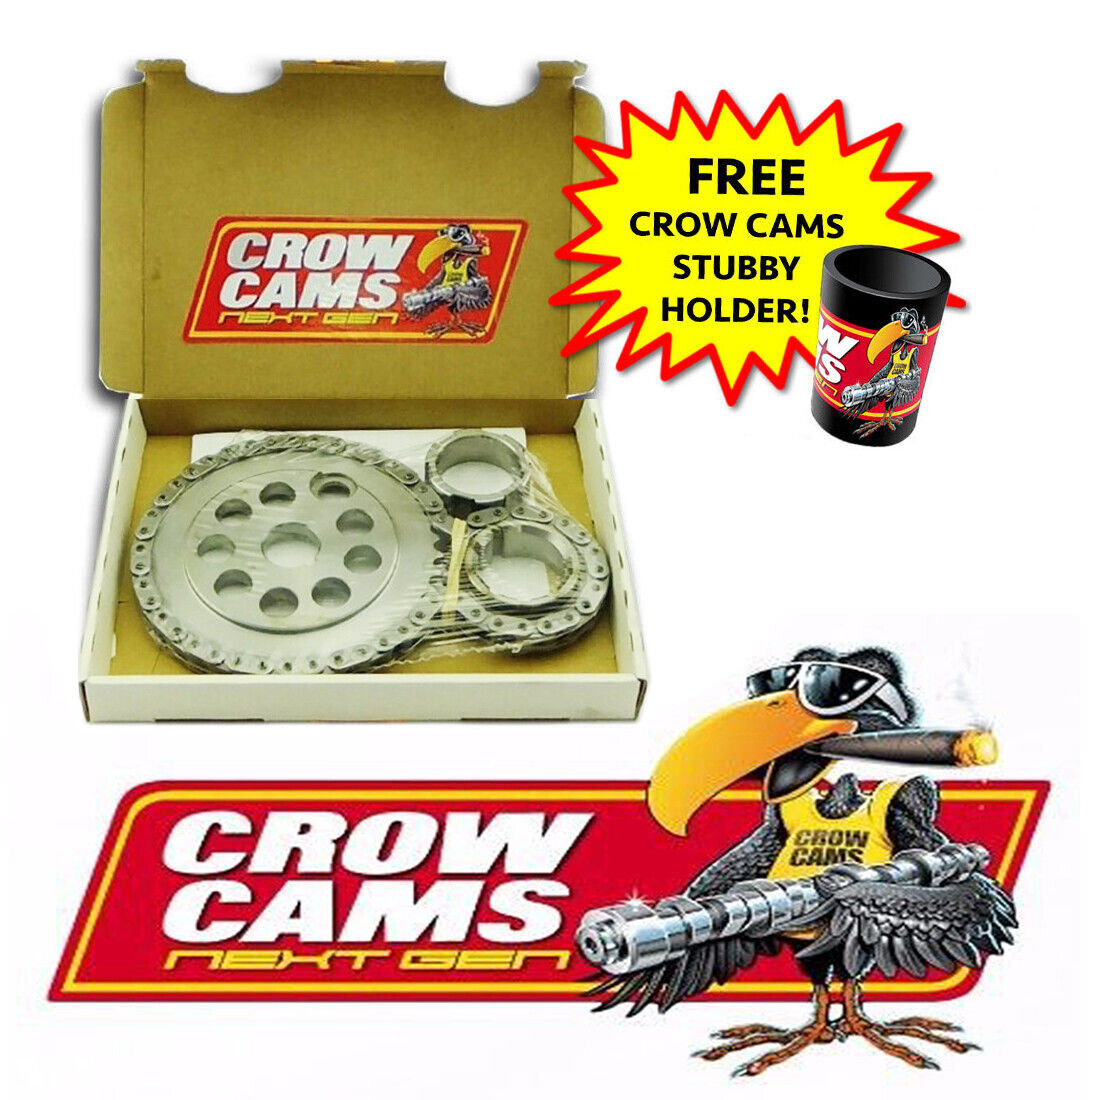 Details about Crow Cams High Performance Timing Chain Set for Holden  Commodore V6 VS VT VX VY